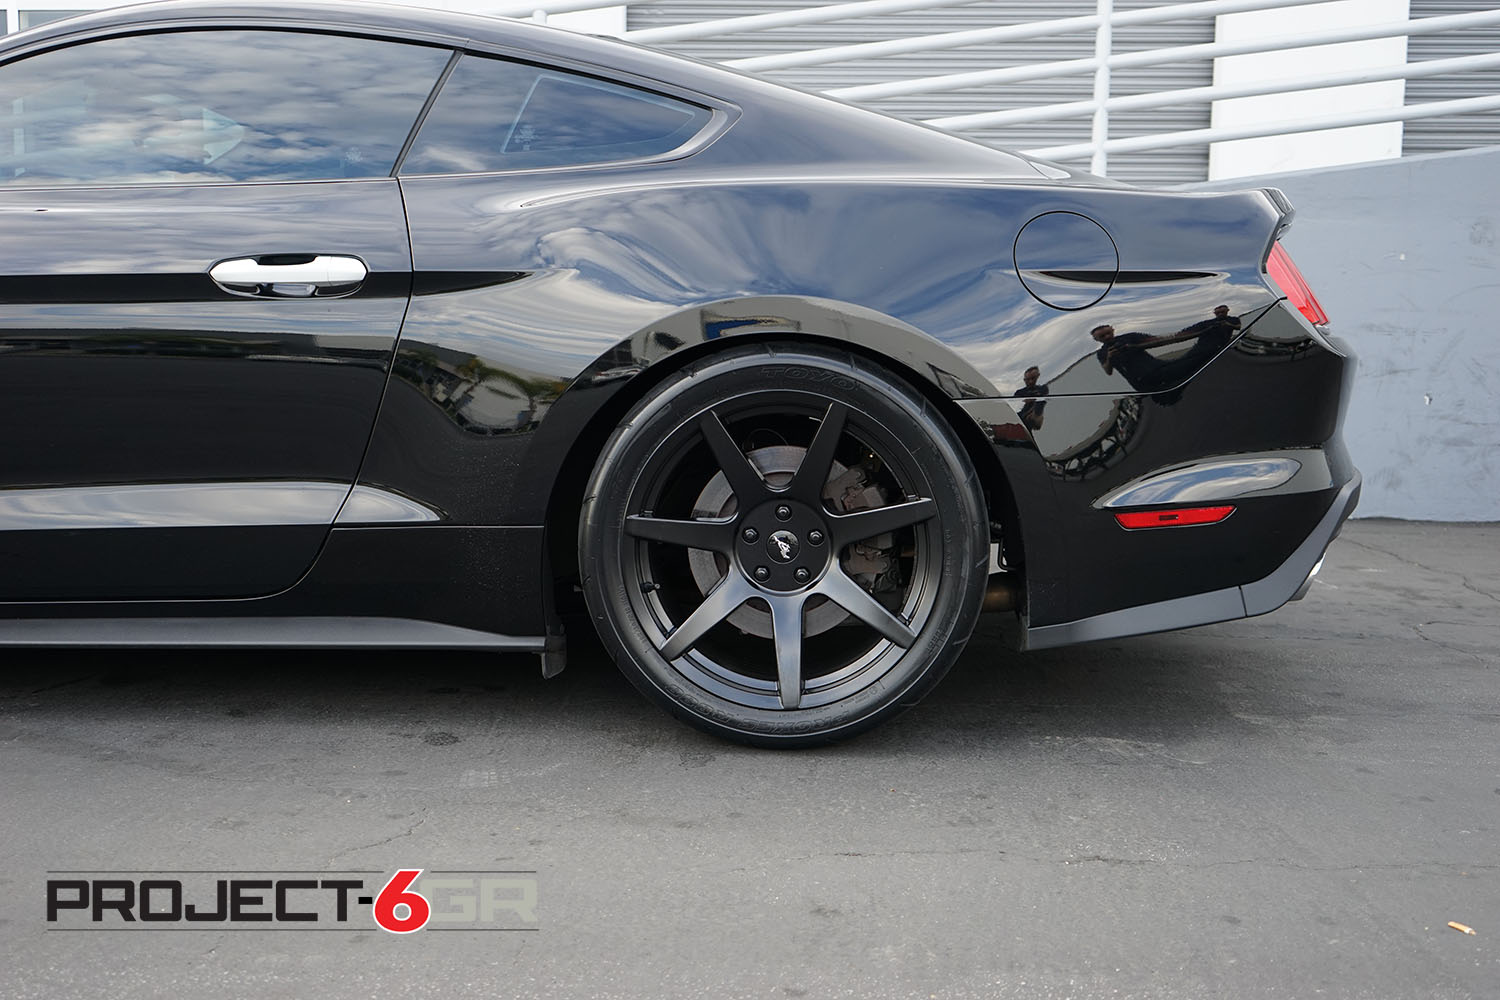 home depot glendale with Audi R8 Gets Rotary Formed Matte Black Rohana Rf2 Wheels on 792145356165 likewise Info H ton Bay close To Ceiling Lights moreover 6 furthermore Wholesale Duplicator ink color ink for Duplicators furthermore Cool Deck Repair Glendale.